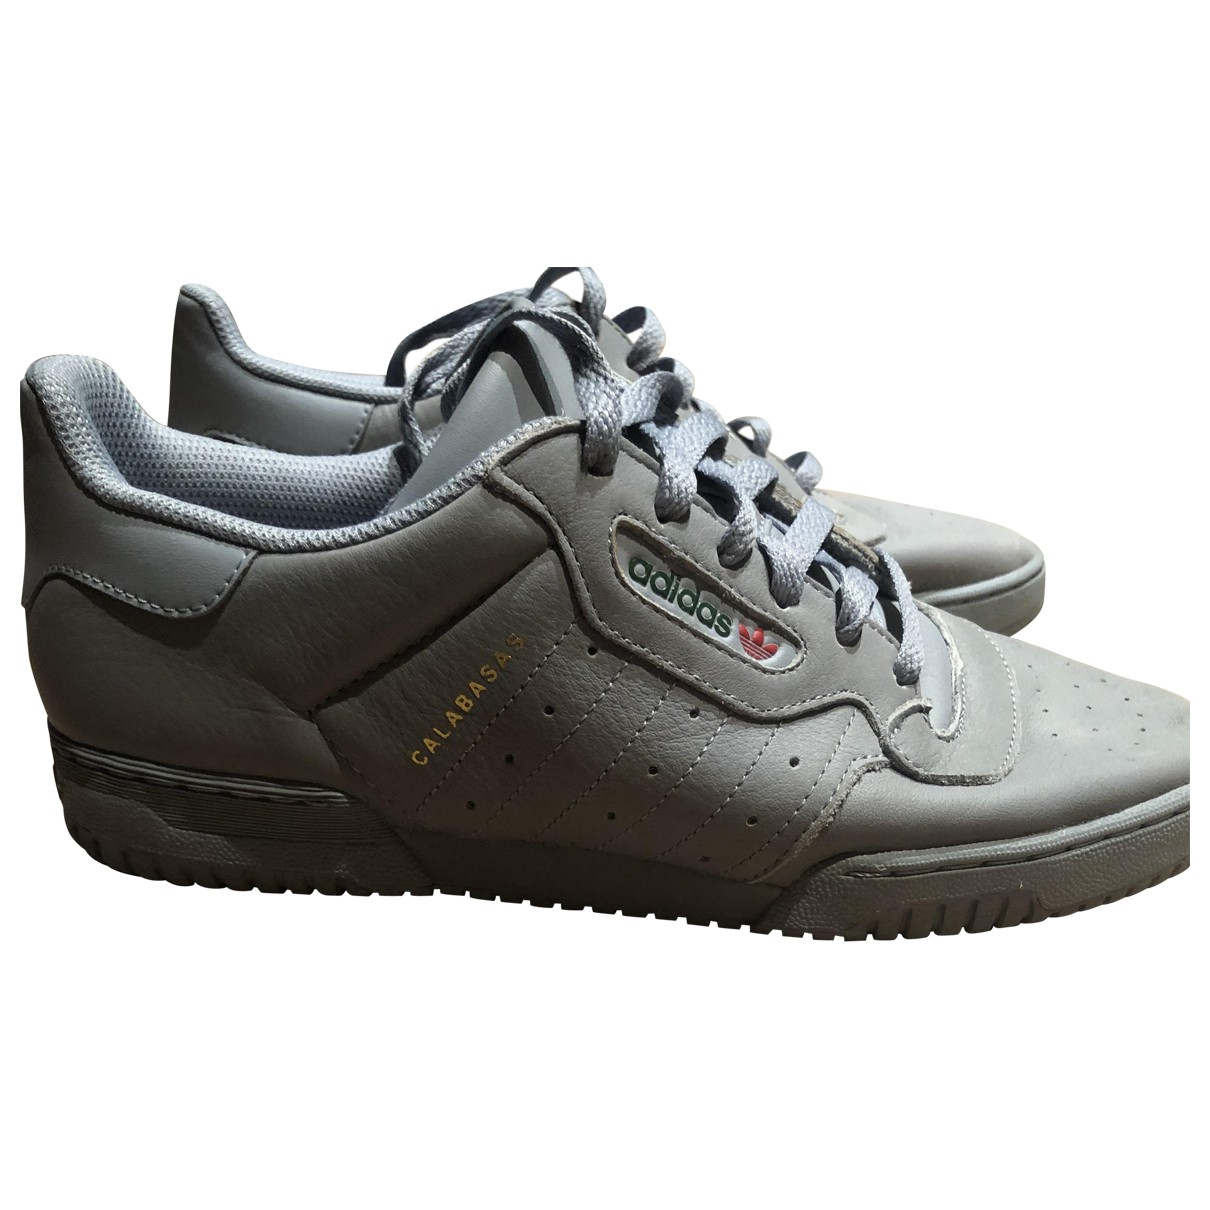 Yeezy X Adidas POWERPHASE Grey Leather Trainers for Men 10 UK